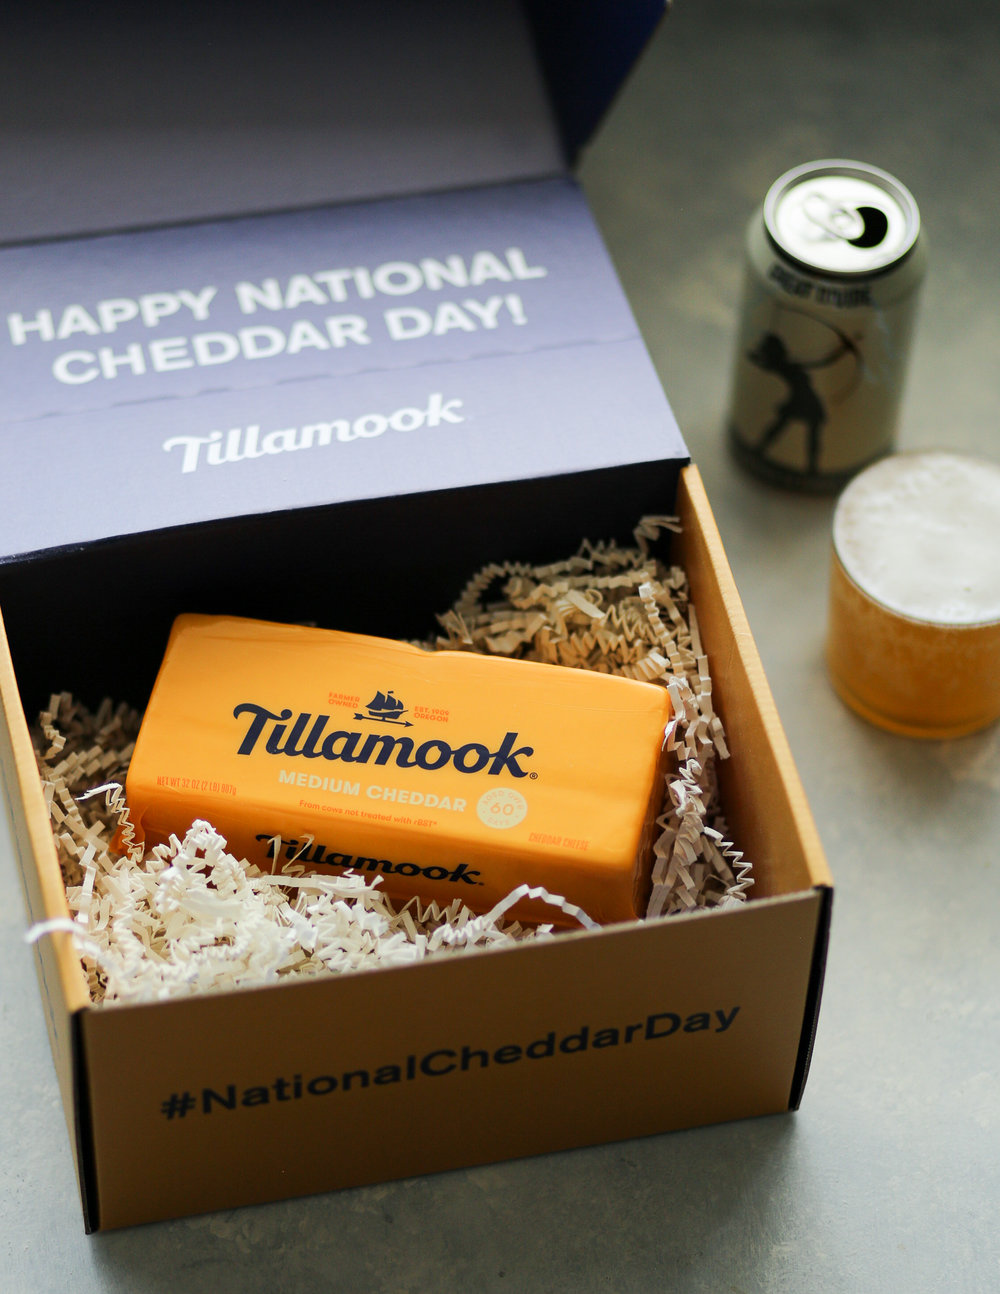 Craft Beer + Cheddar Pairing Tips | Set the Table #tillamook #nationalcheddarday #beerandcheesepairing #howto